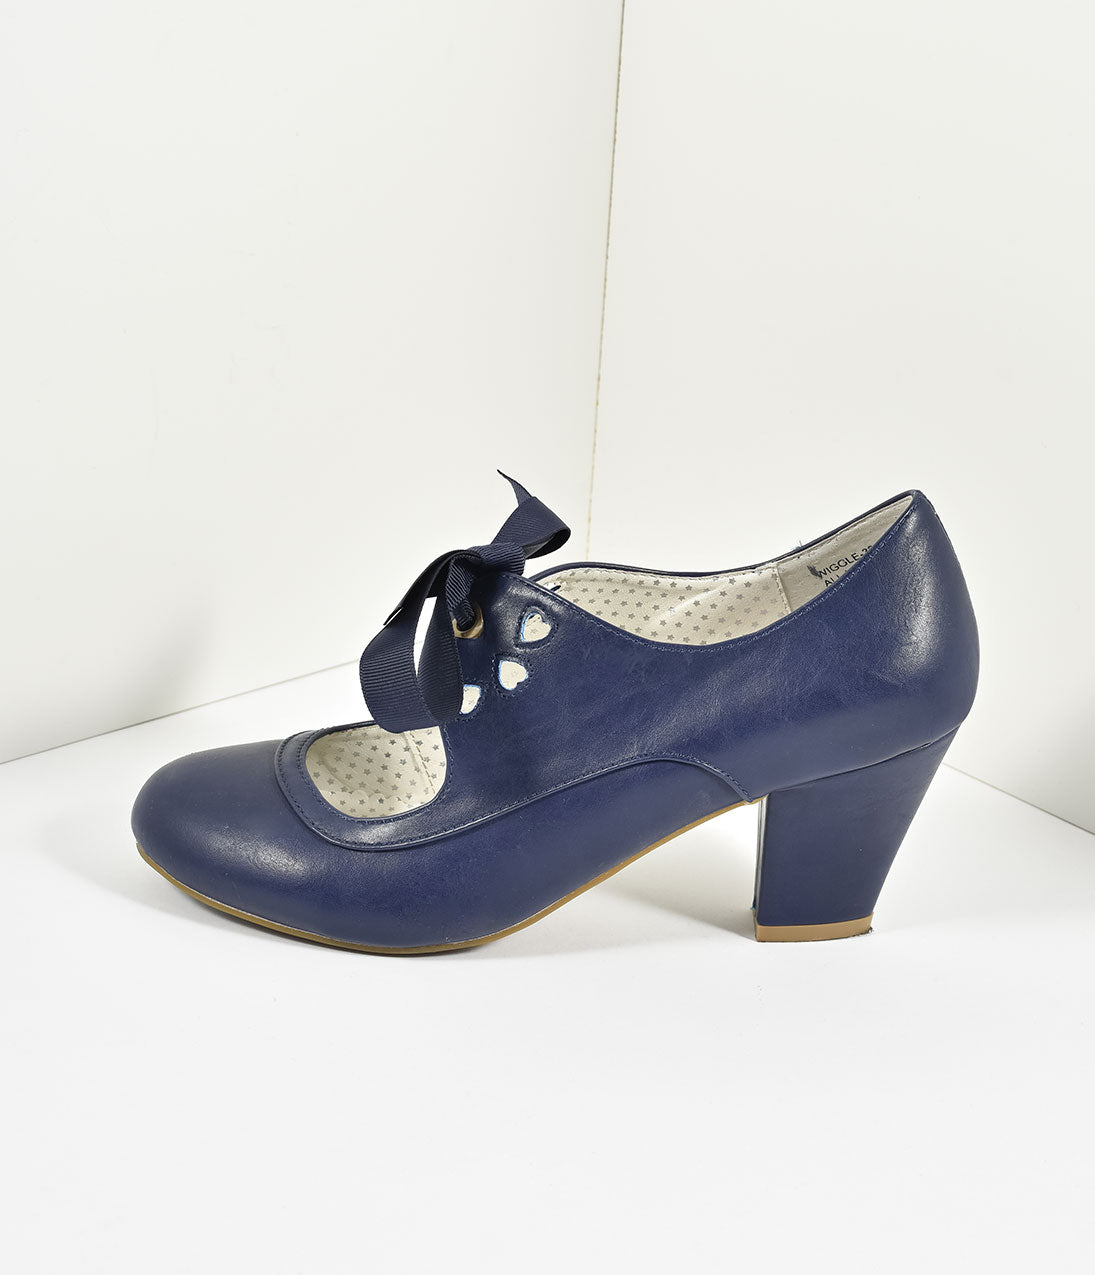 Vintage Style Shoes, Vintage Inspired Shoes Vintage Style Navy Blue Leatherette Mary Jane Bow Wiggle Heels $58.00 AT vintagedancer.com